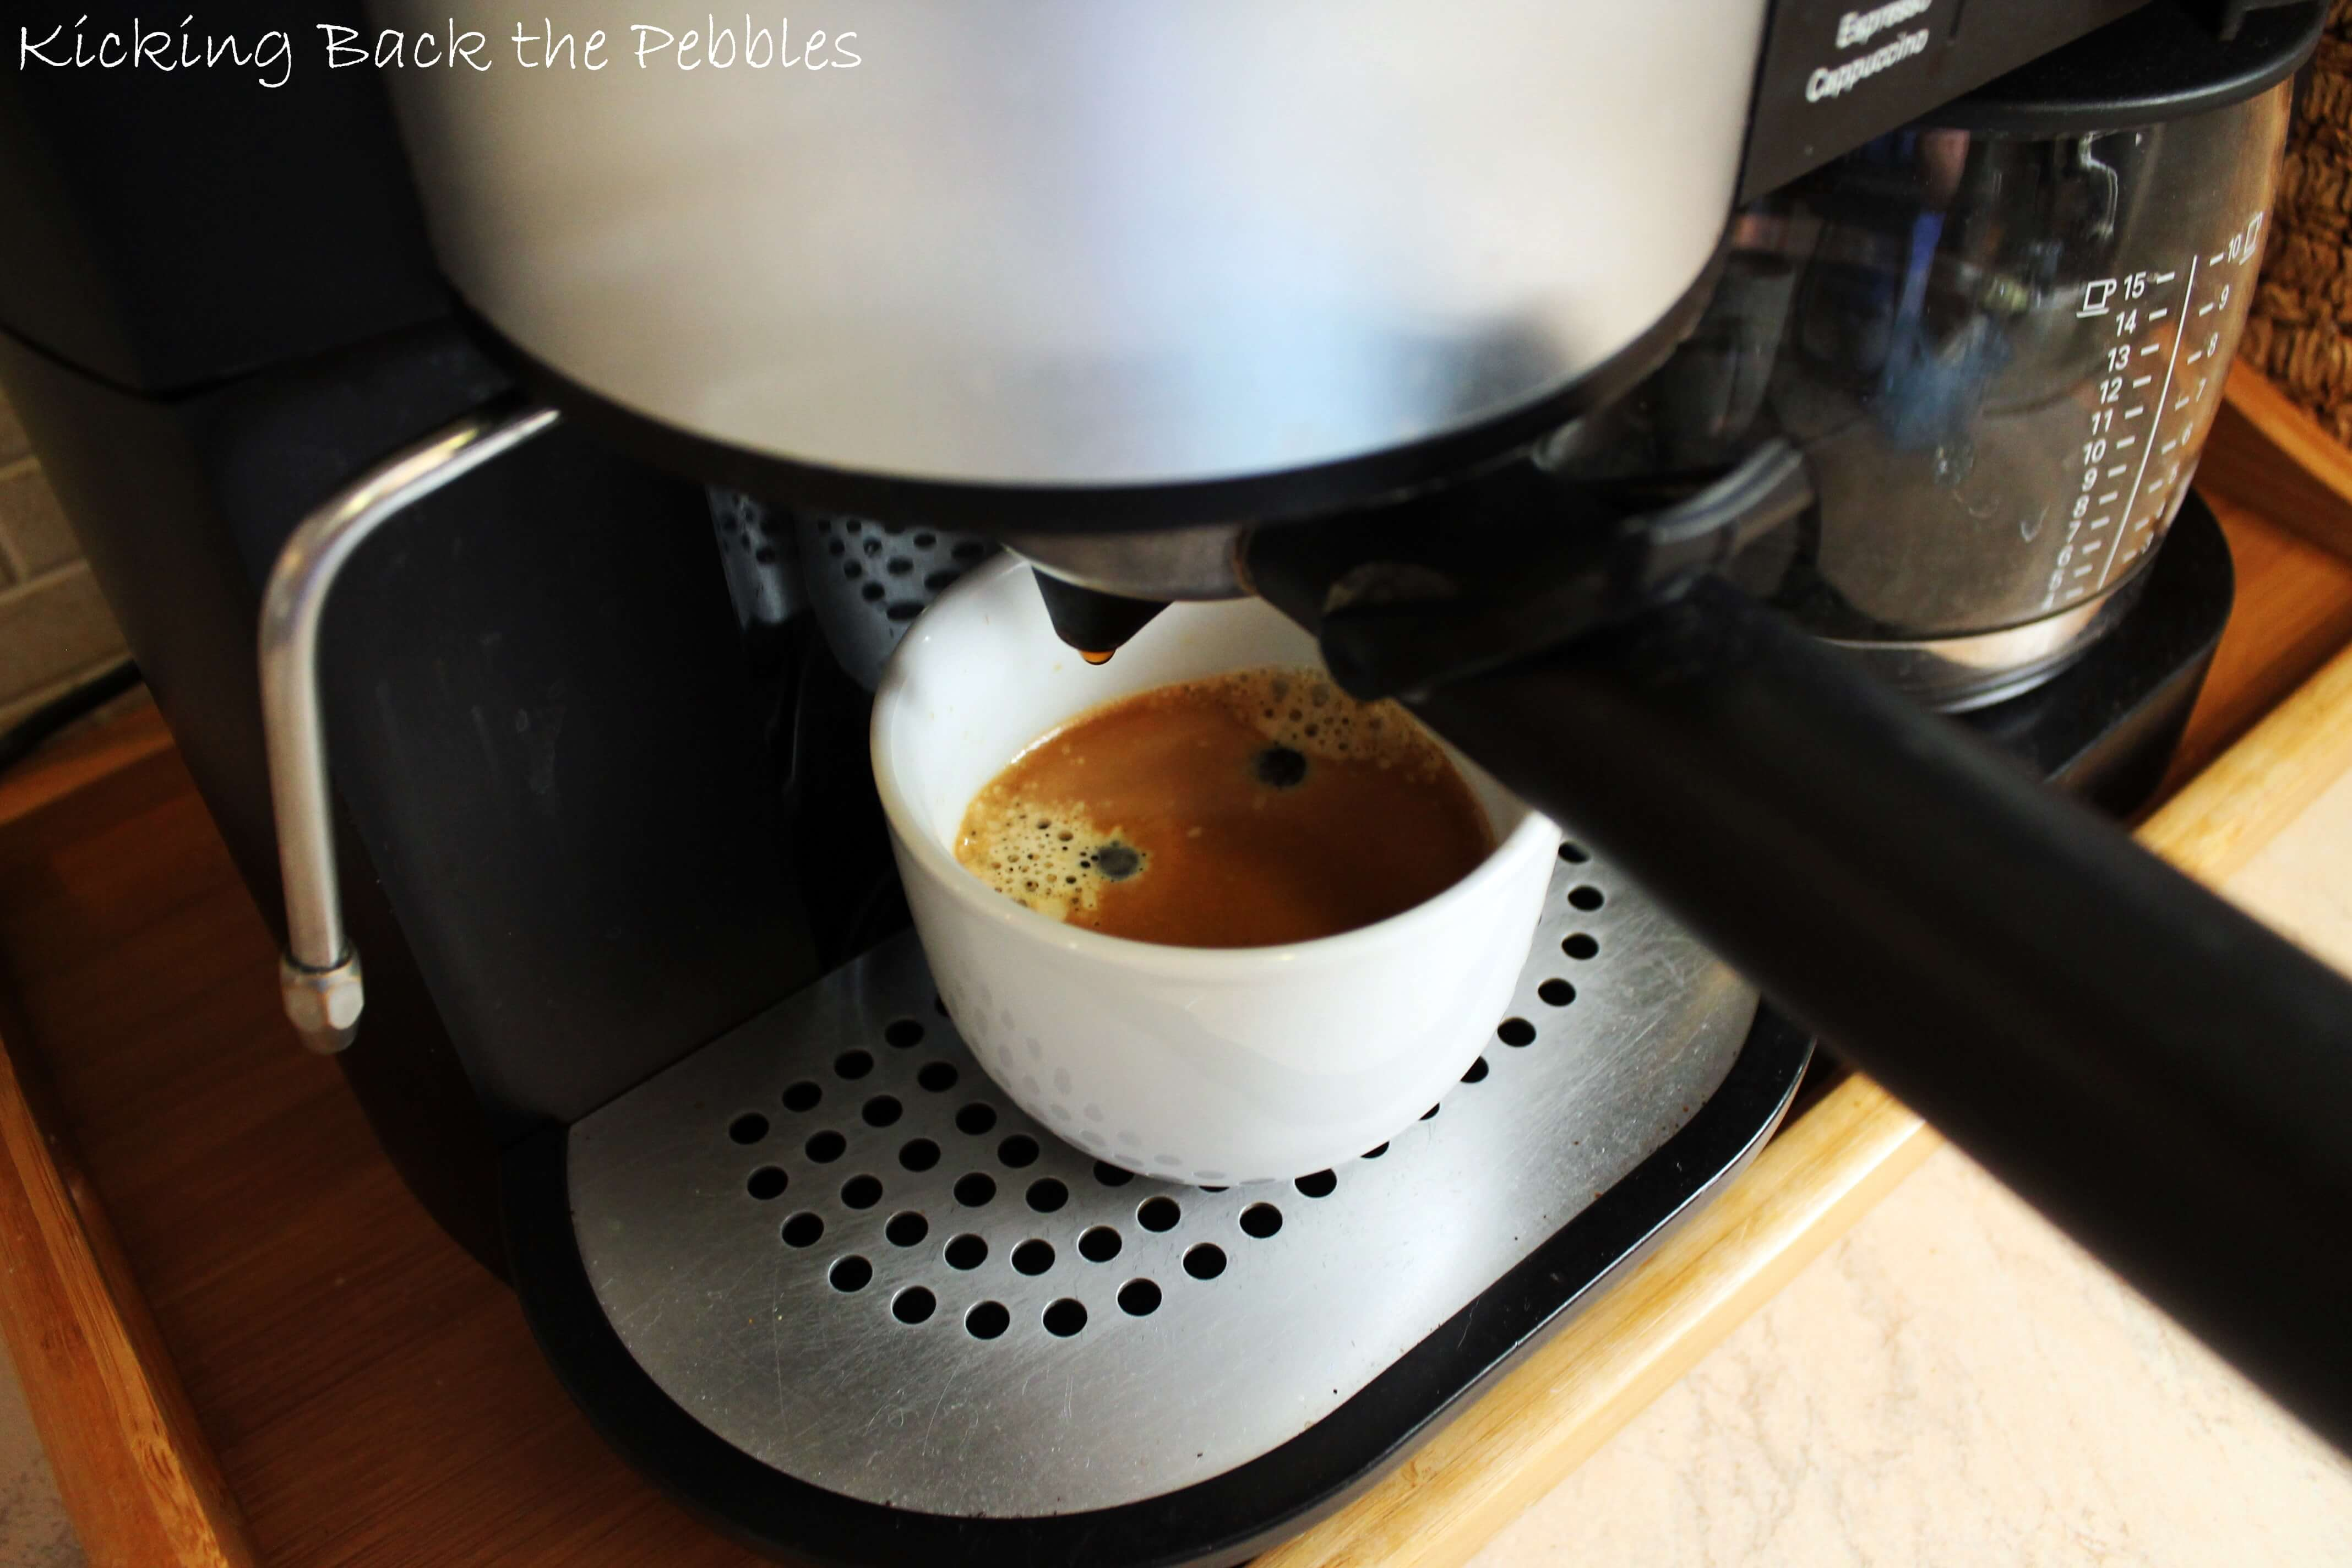 Espresso machine | Kicking Back the Pebbles